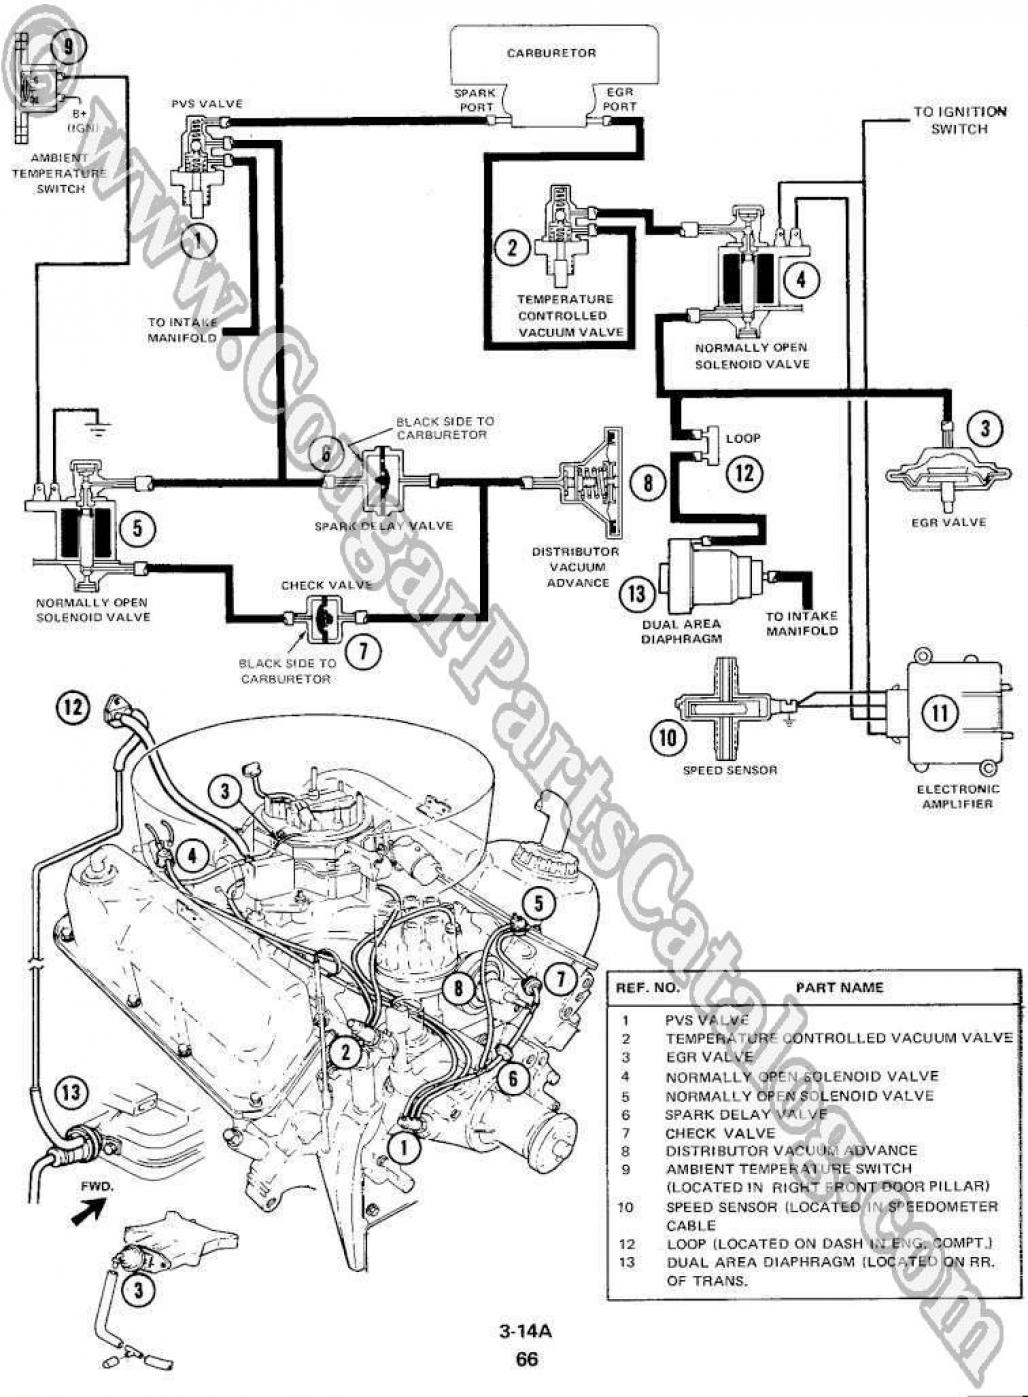 2001 mustang parts diagram cat5 rj45 wiring 3 8 engine library